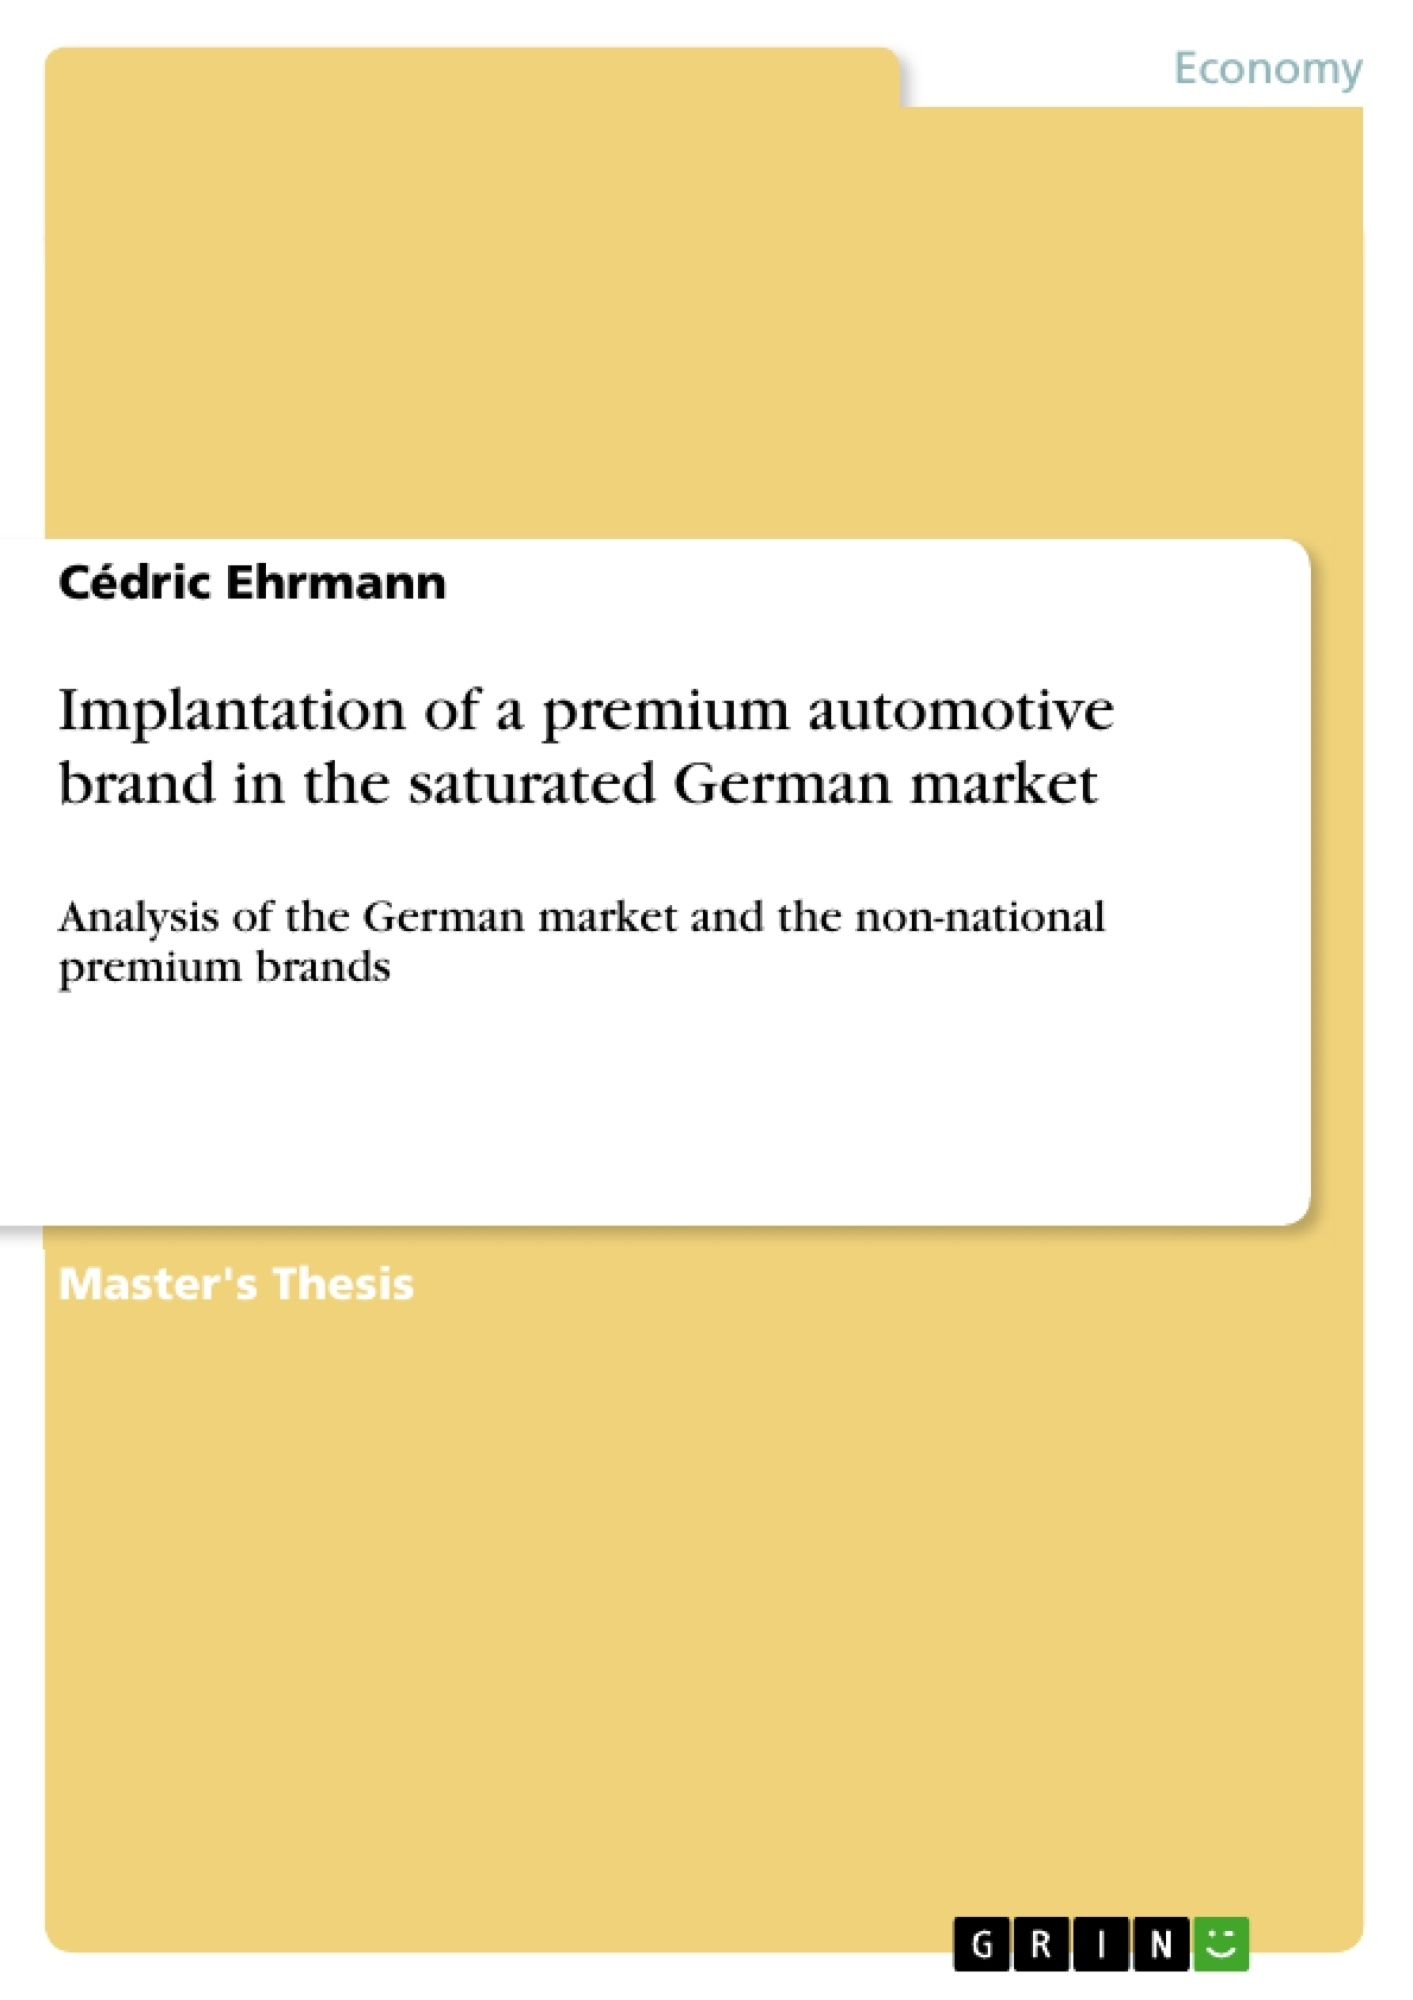 Title: Implantation of a premium automotive brand in the saturated German market